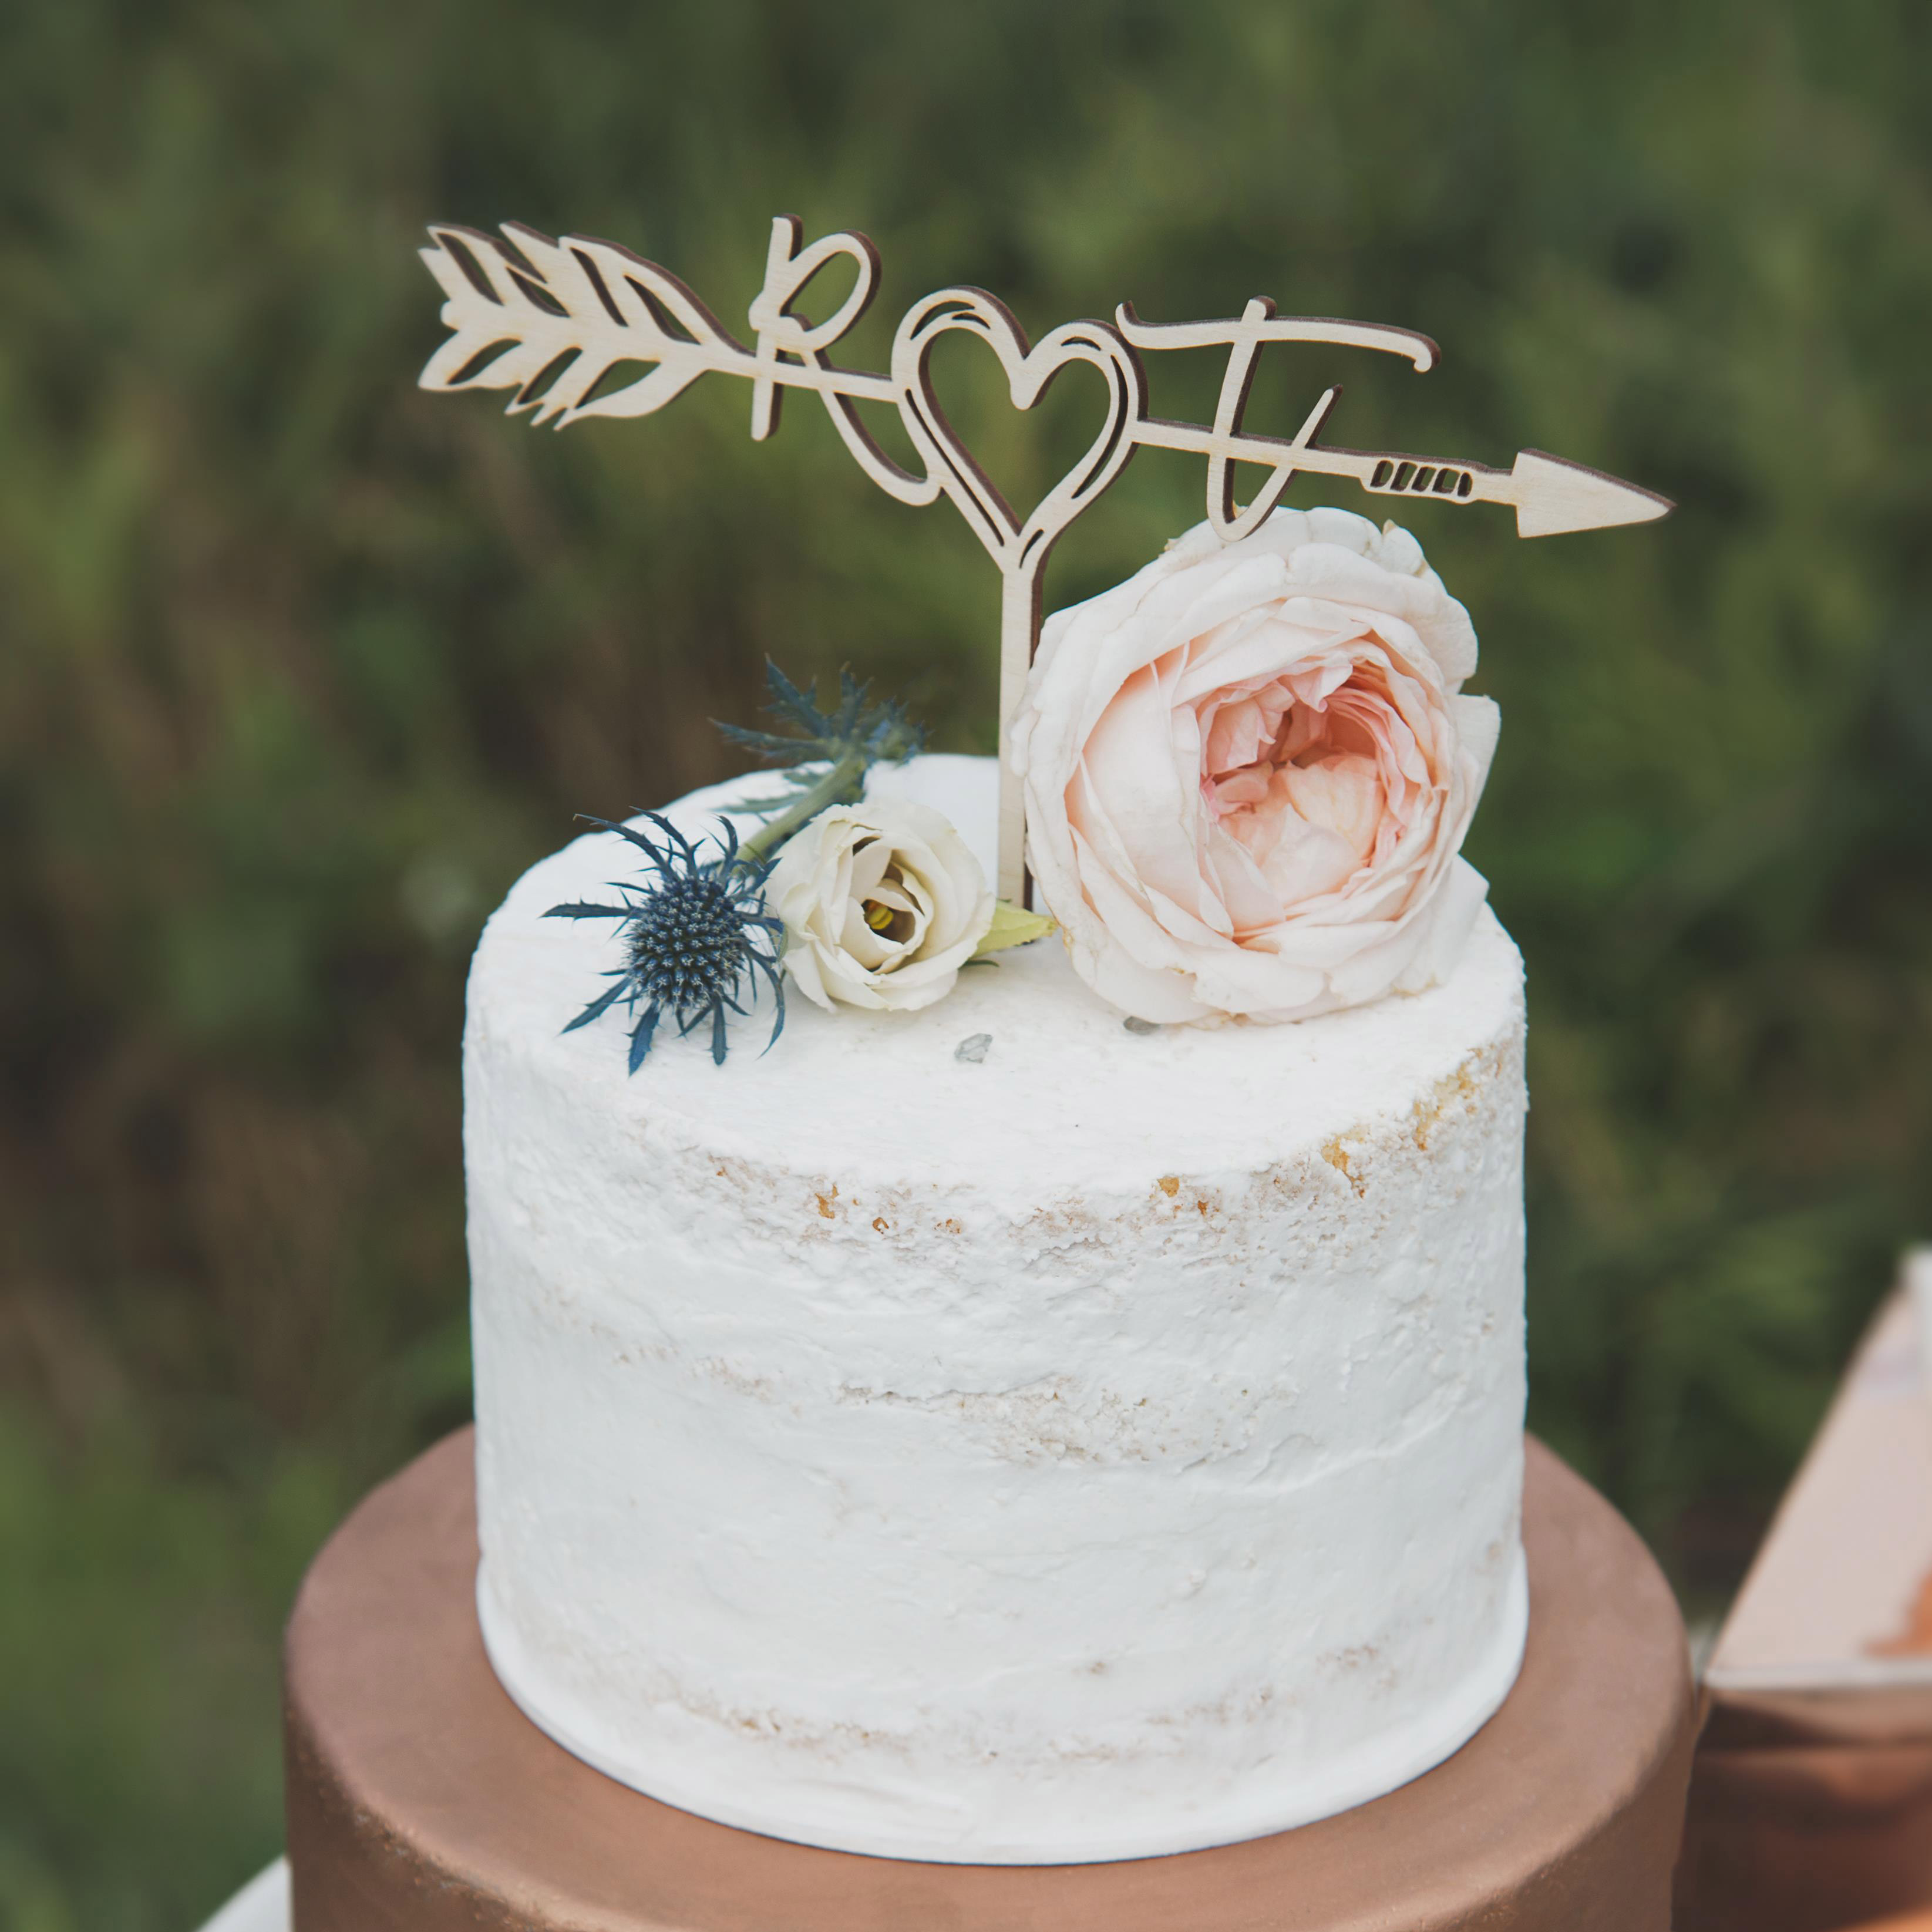 Initials in a boho arrow cake topper by Thistle and Lace